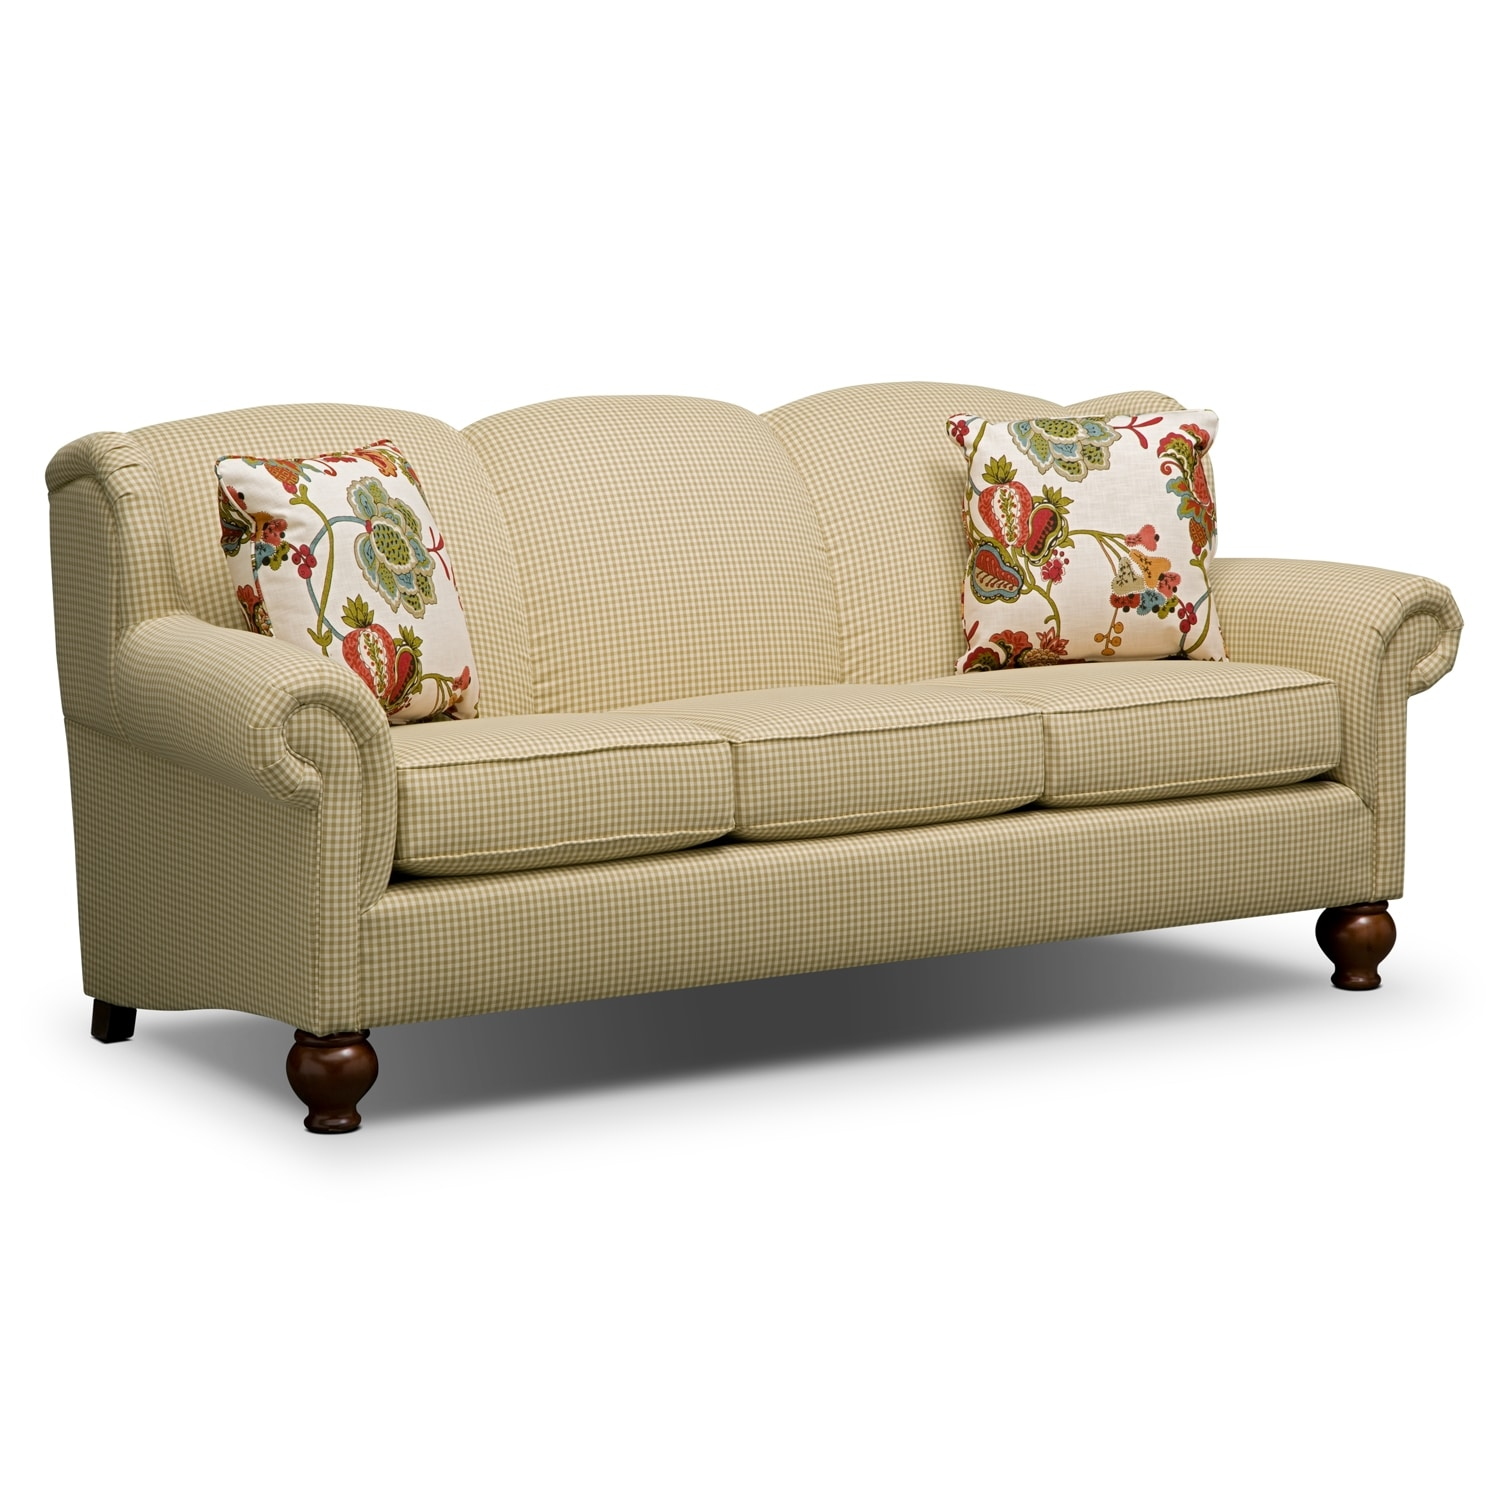 Living Room Furniture - Charlotte II Sofa